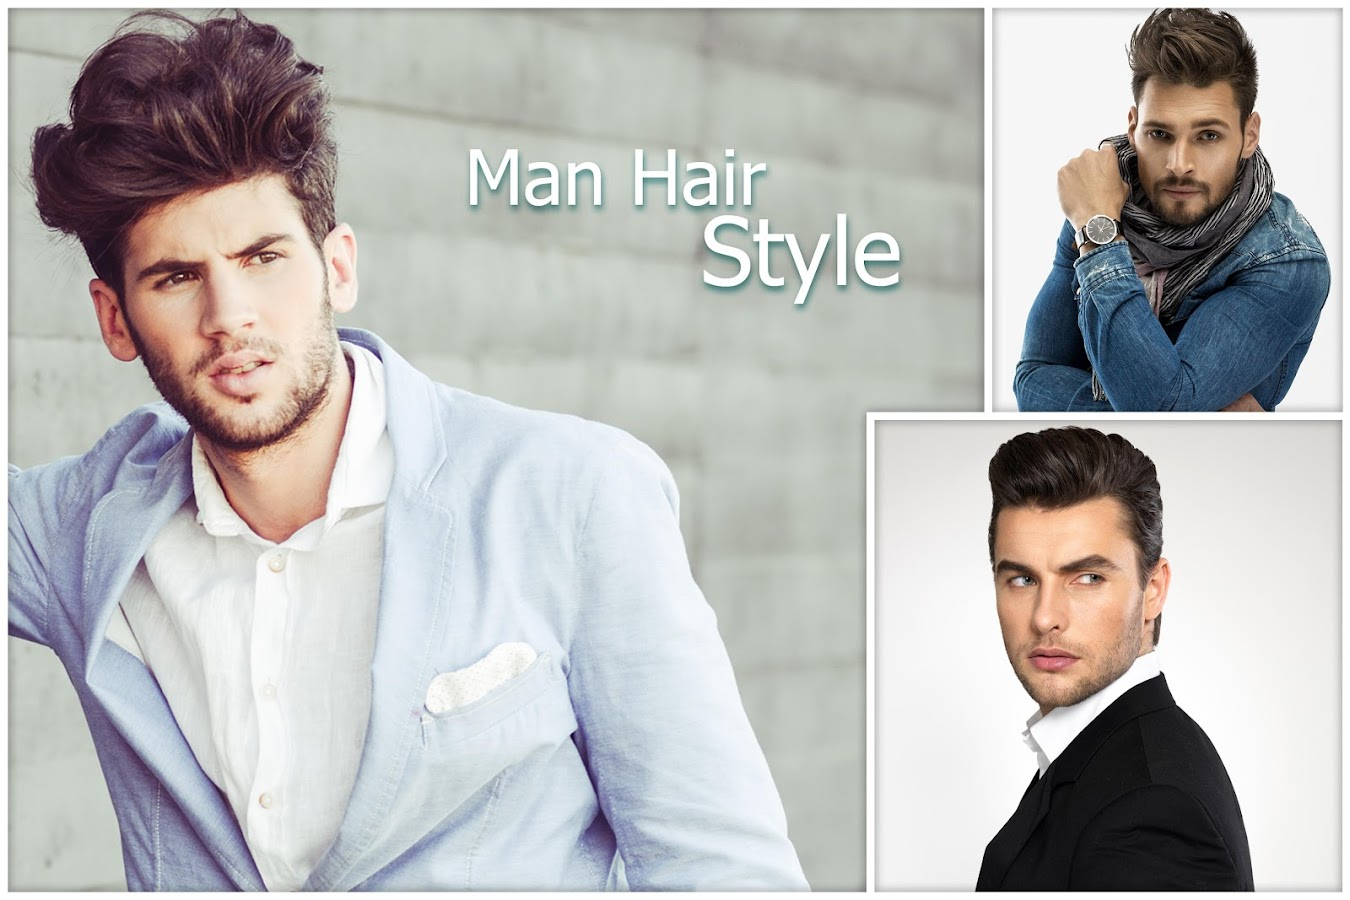 man hair style photo editor - android apps on google play